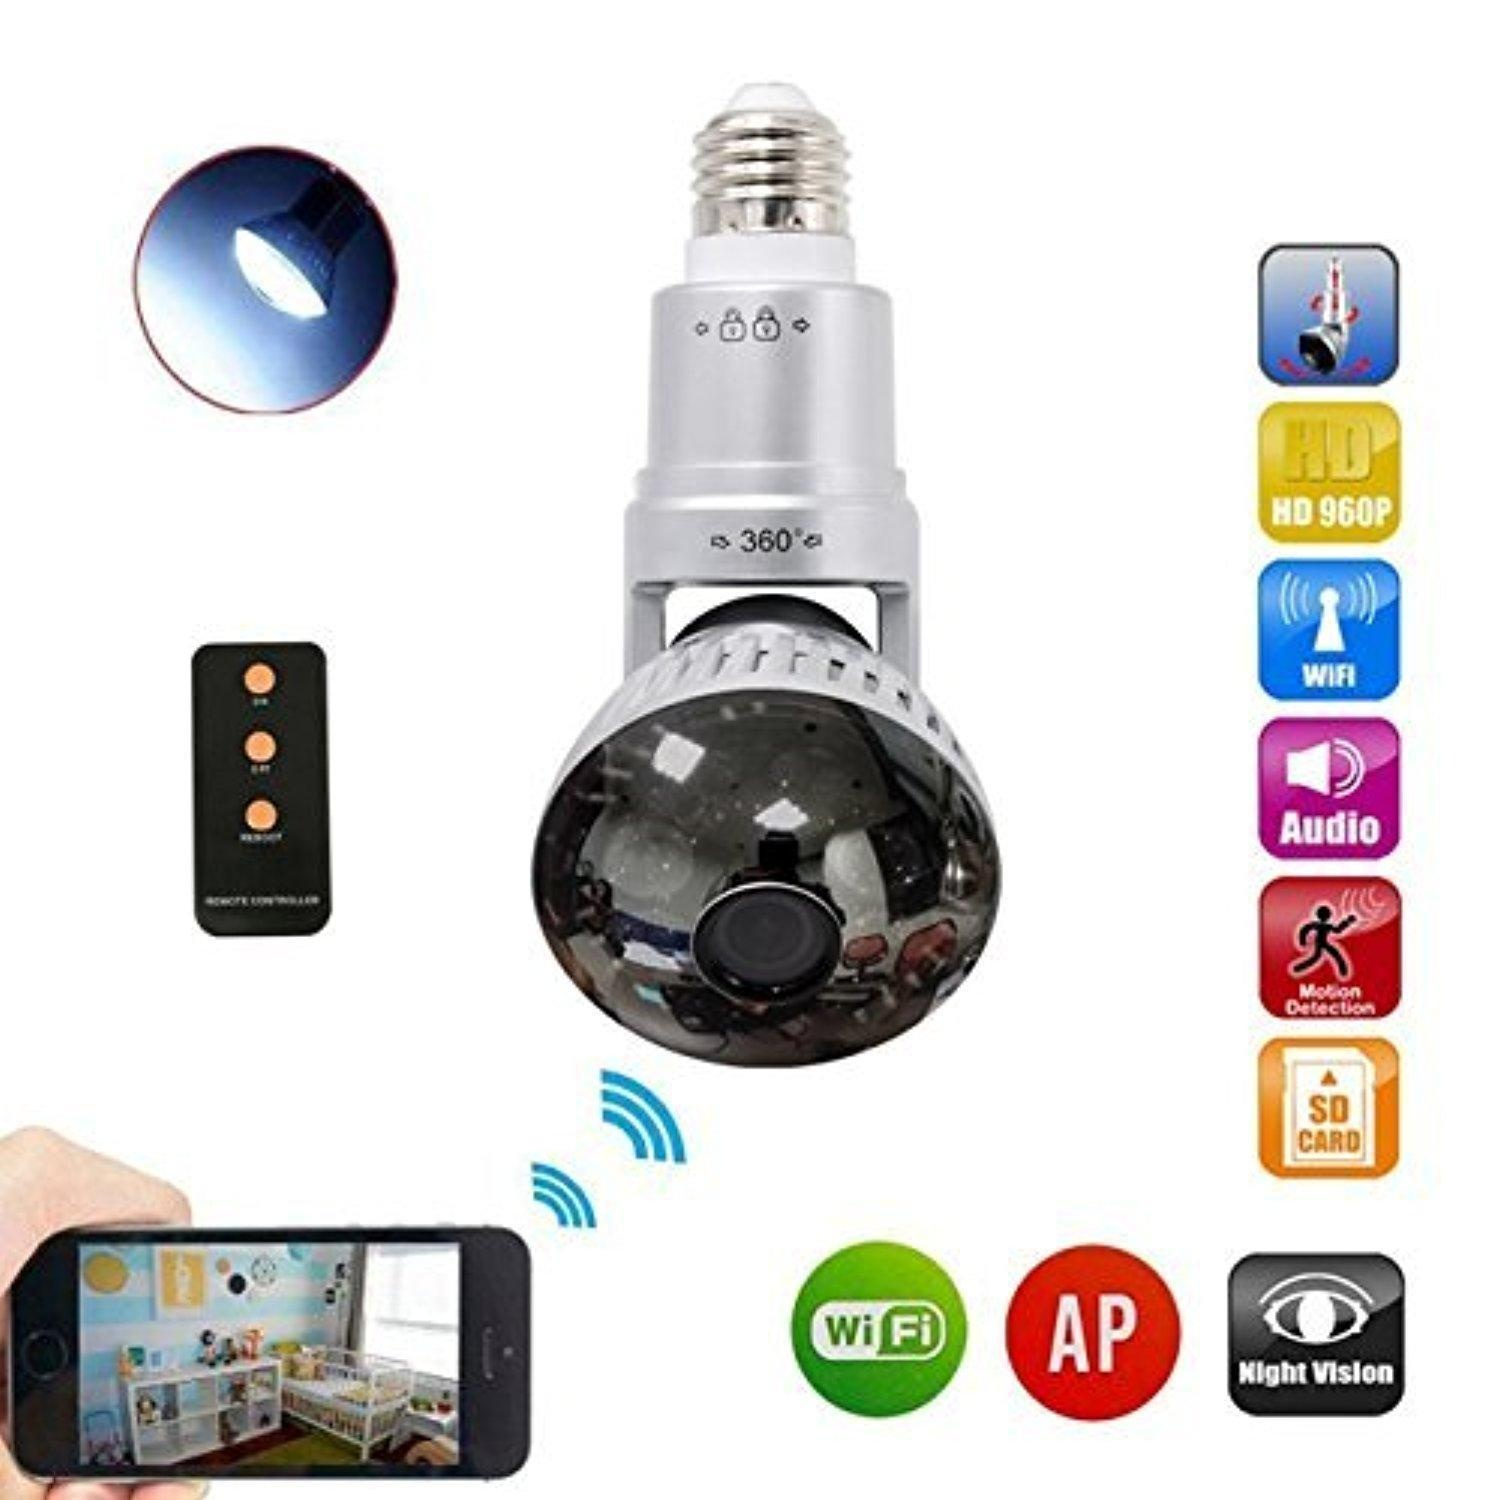 Bulb Security Dvr Camera Motion Dection,Night Vision,Circular Storage,Using  940nm,Mirror Cover Support Iphone Or Android App Remote View 120 Degree